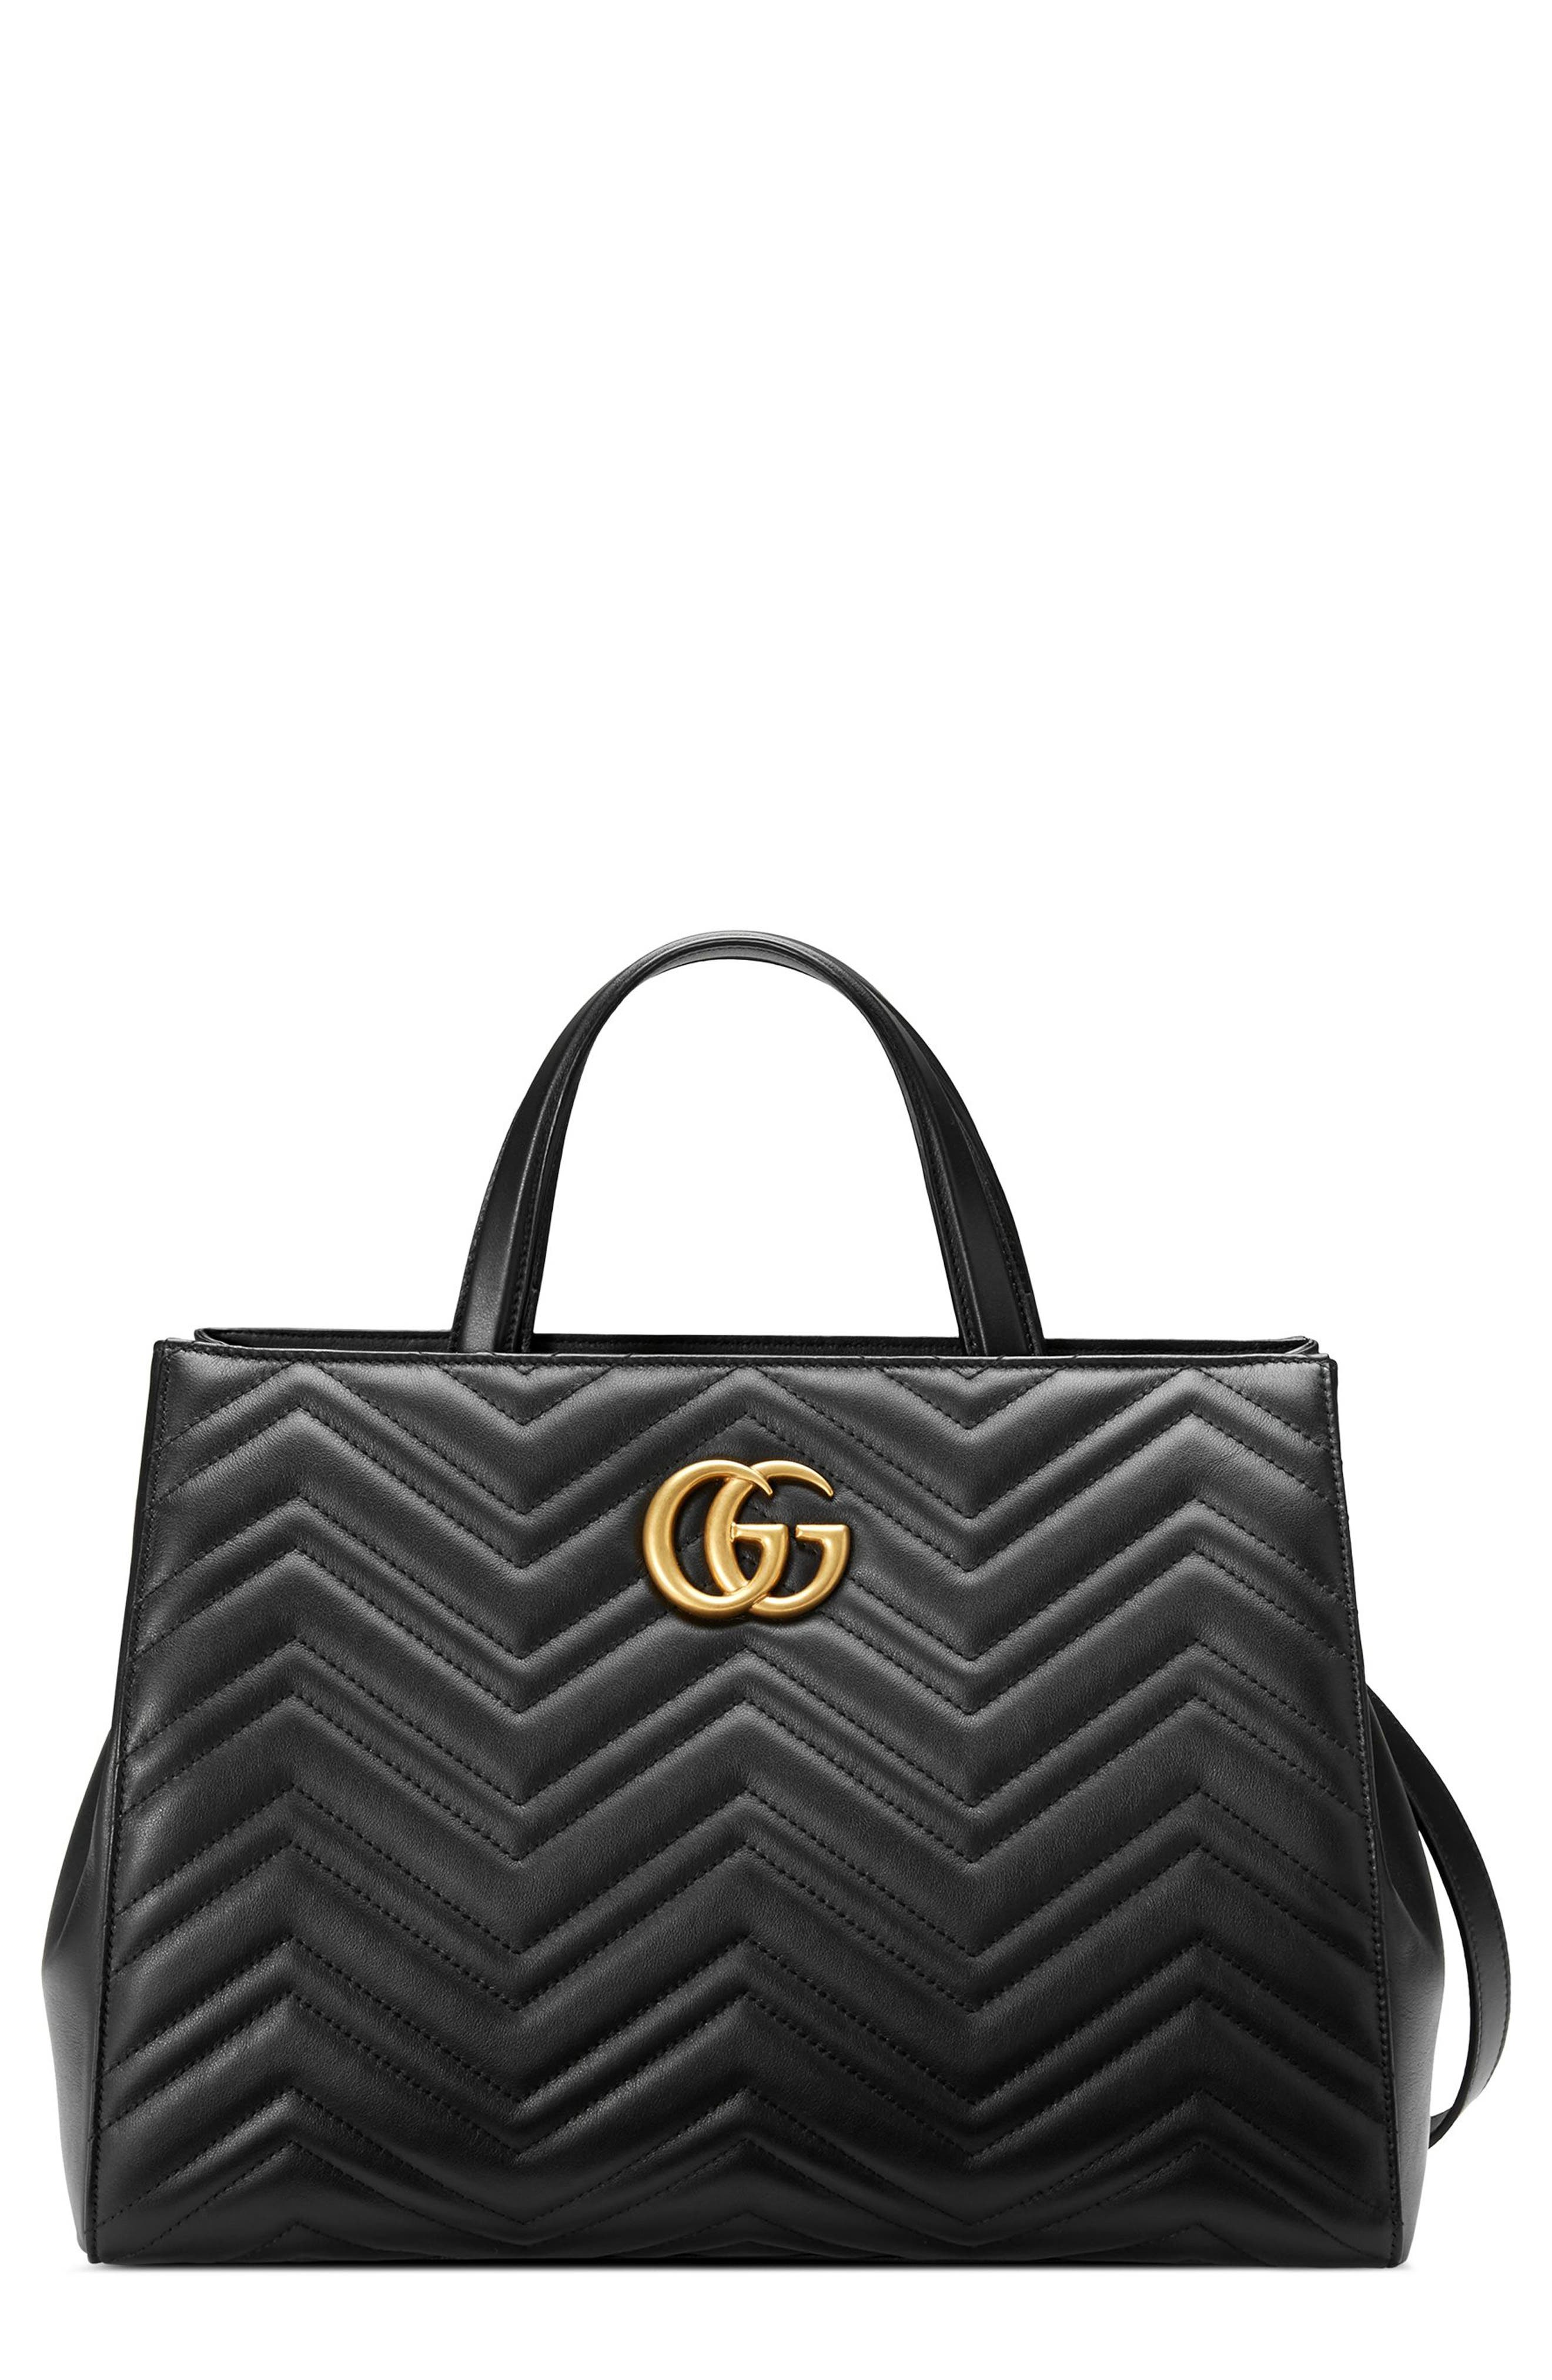 Gucci GG Marmont Medium Matelassé Leather Top Handle Shoulder Bag